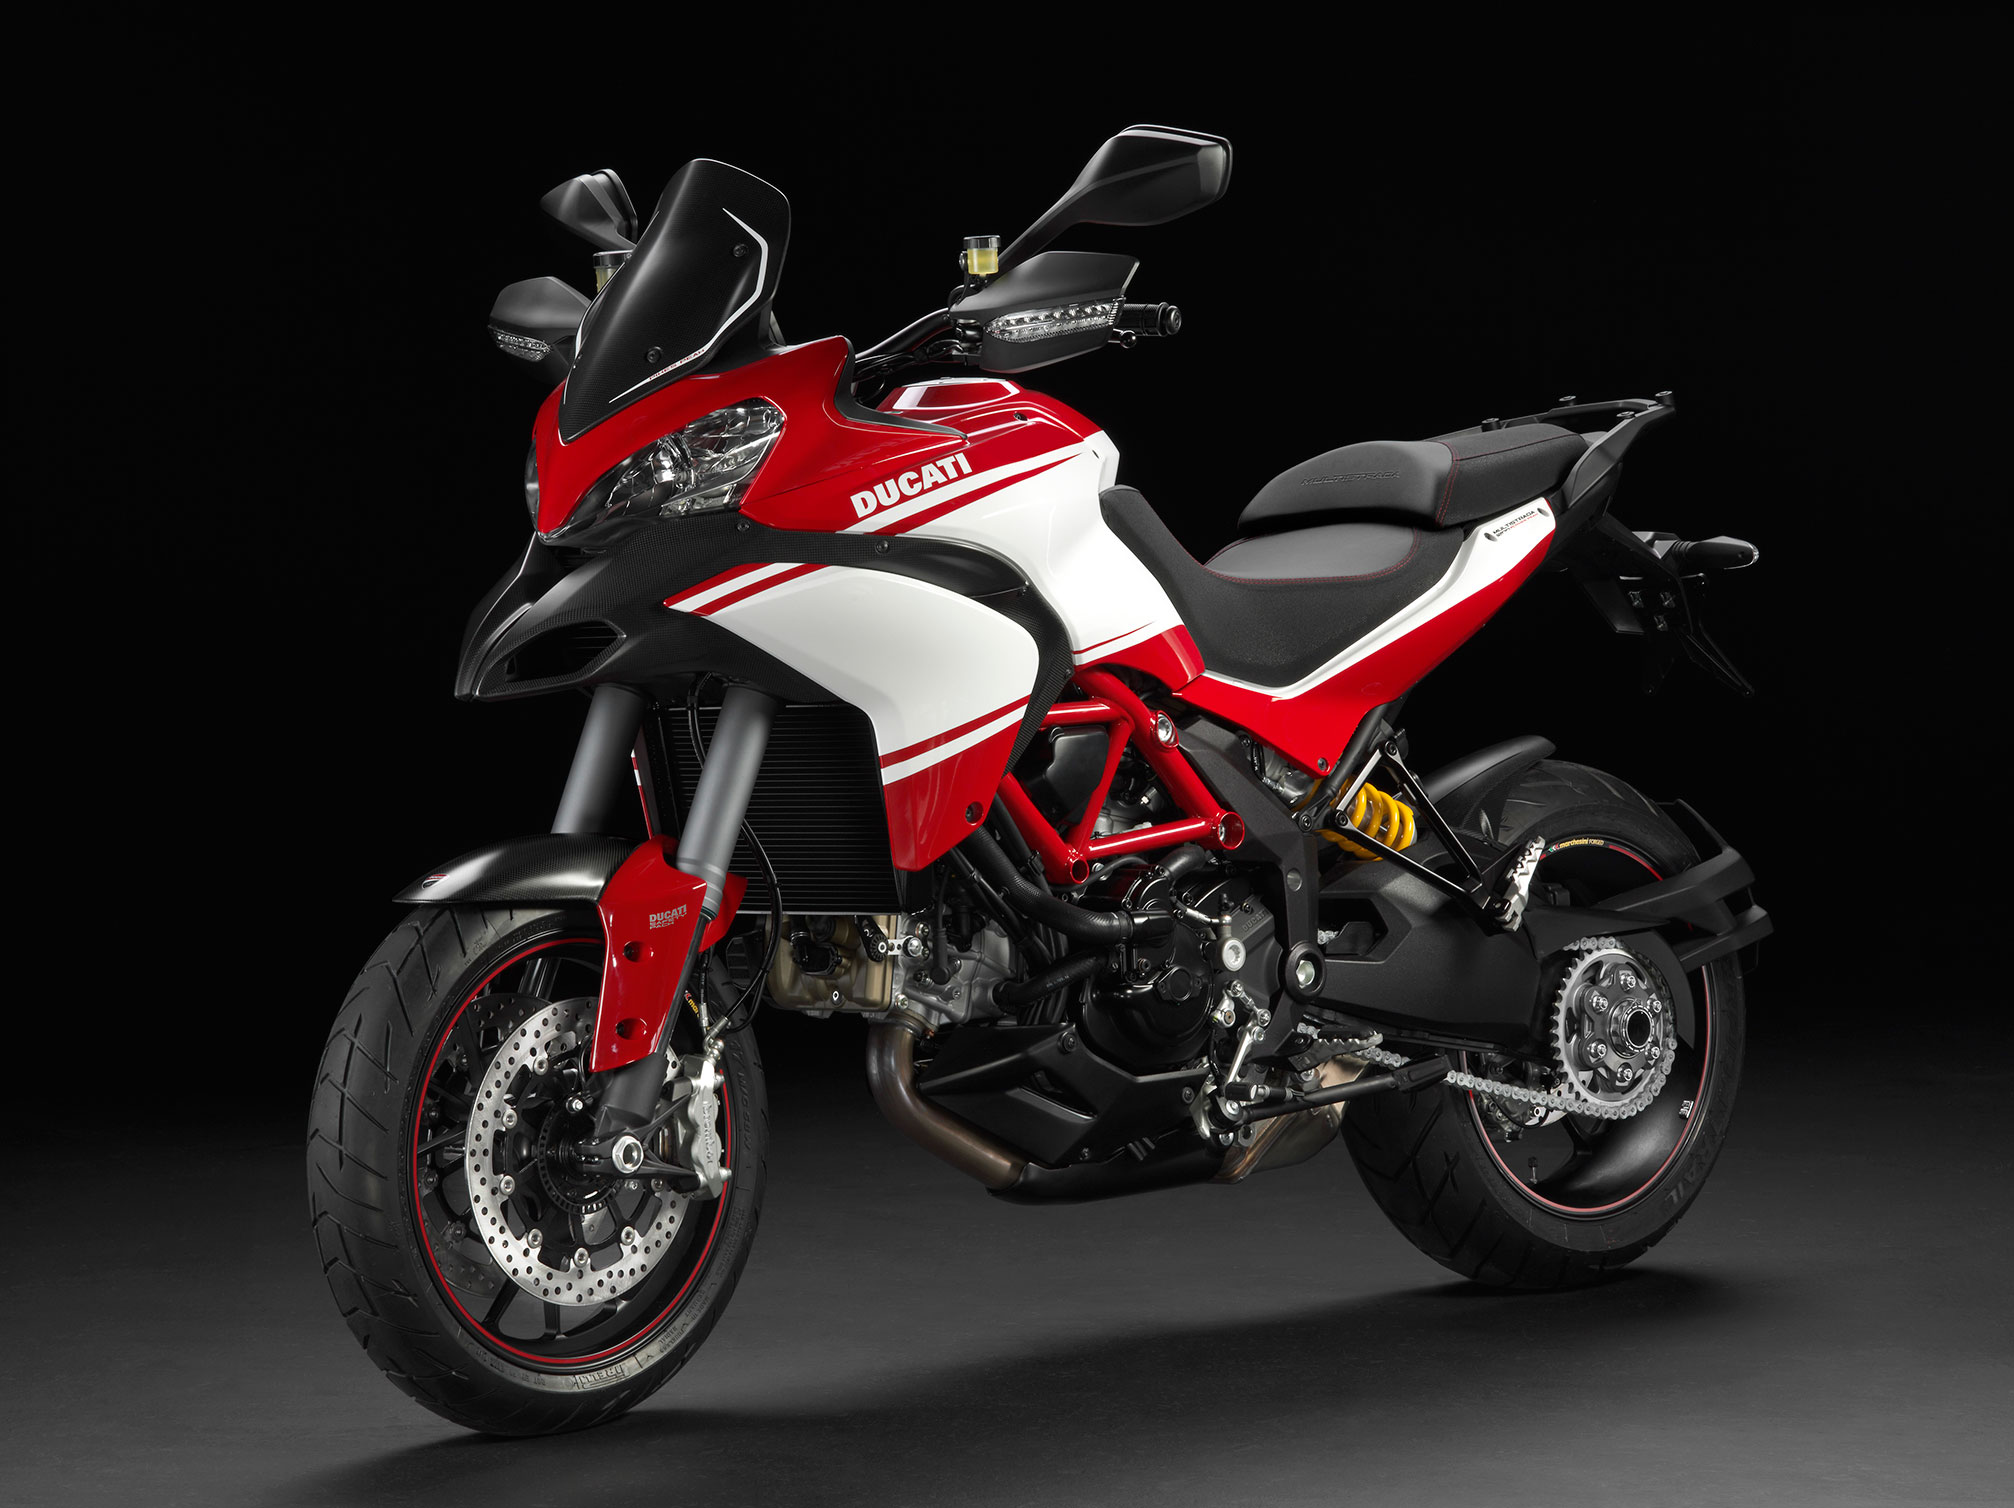 ducati multistrada 1200 s pikes peak specs 2013 2014 autoevolution. Black Bedroom Furniture Sets. Home Design Ideas